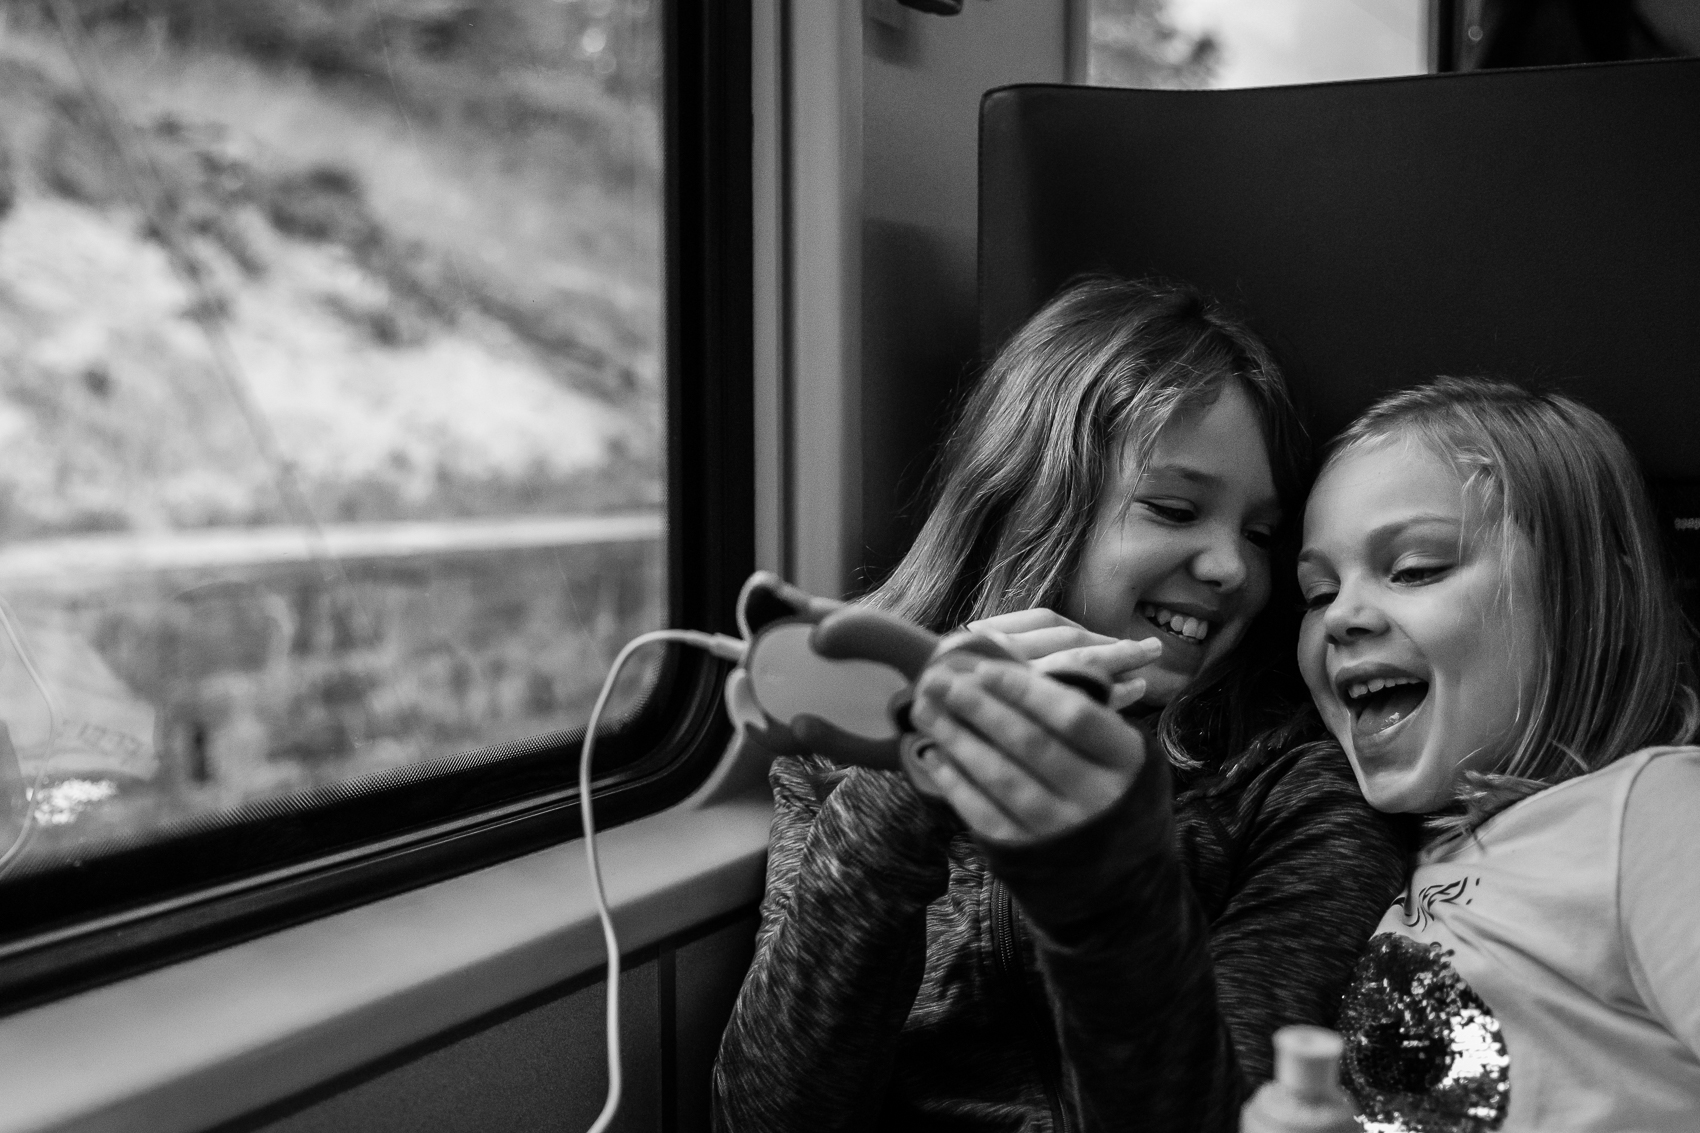 Time on the train allows us to do this, use the bathroom, have a picnic, get on each other's nerves, look out the window, not have to juggle traffic or listen to Siri butcher every road she pronounces